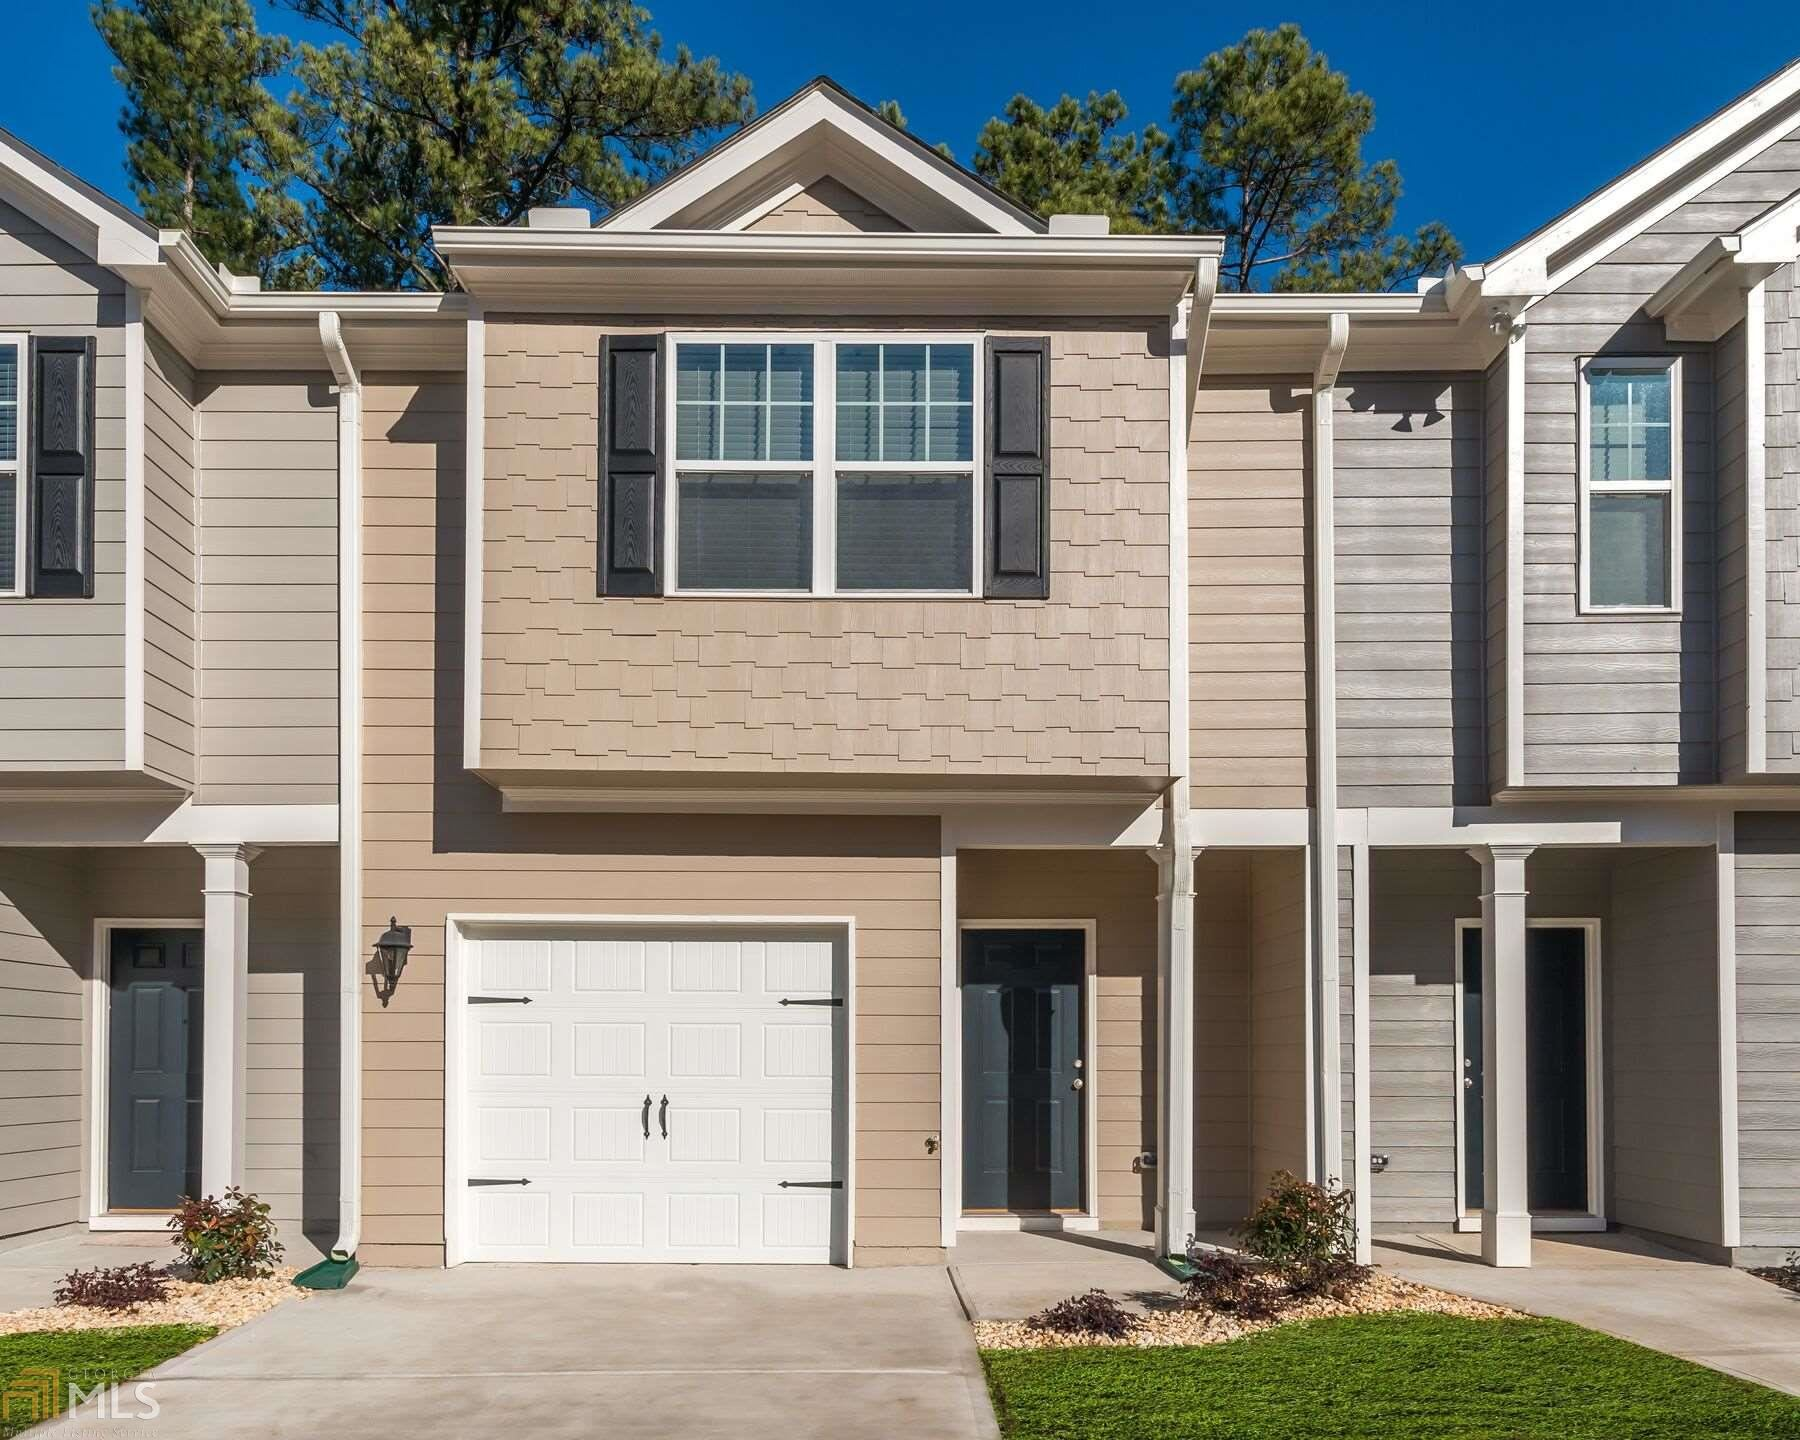 1404 Canopy Dr, East Point, GA 30344 - #: 8803095